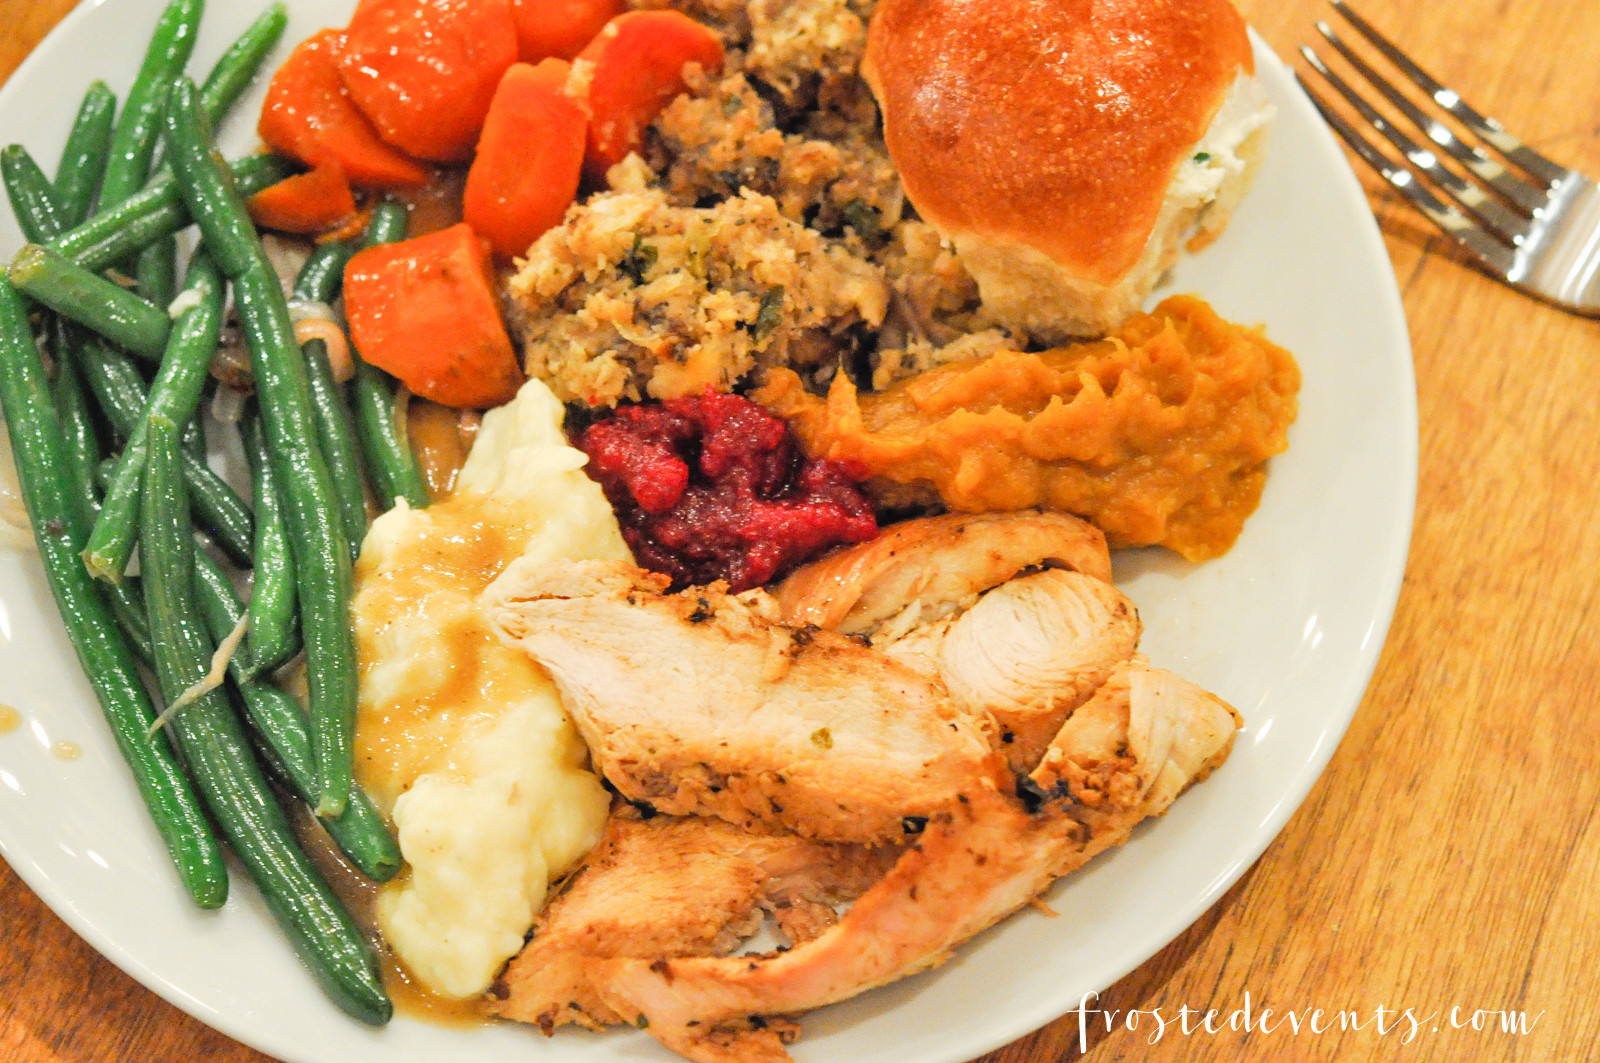 Whole Foods Turkey Dinner  Thanksgiving Dinner Whole Foods and Williams Sonoma Table